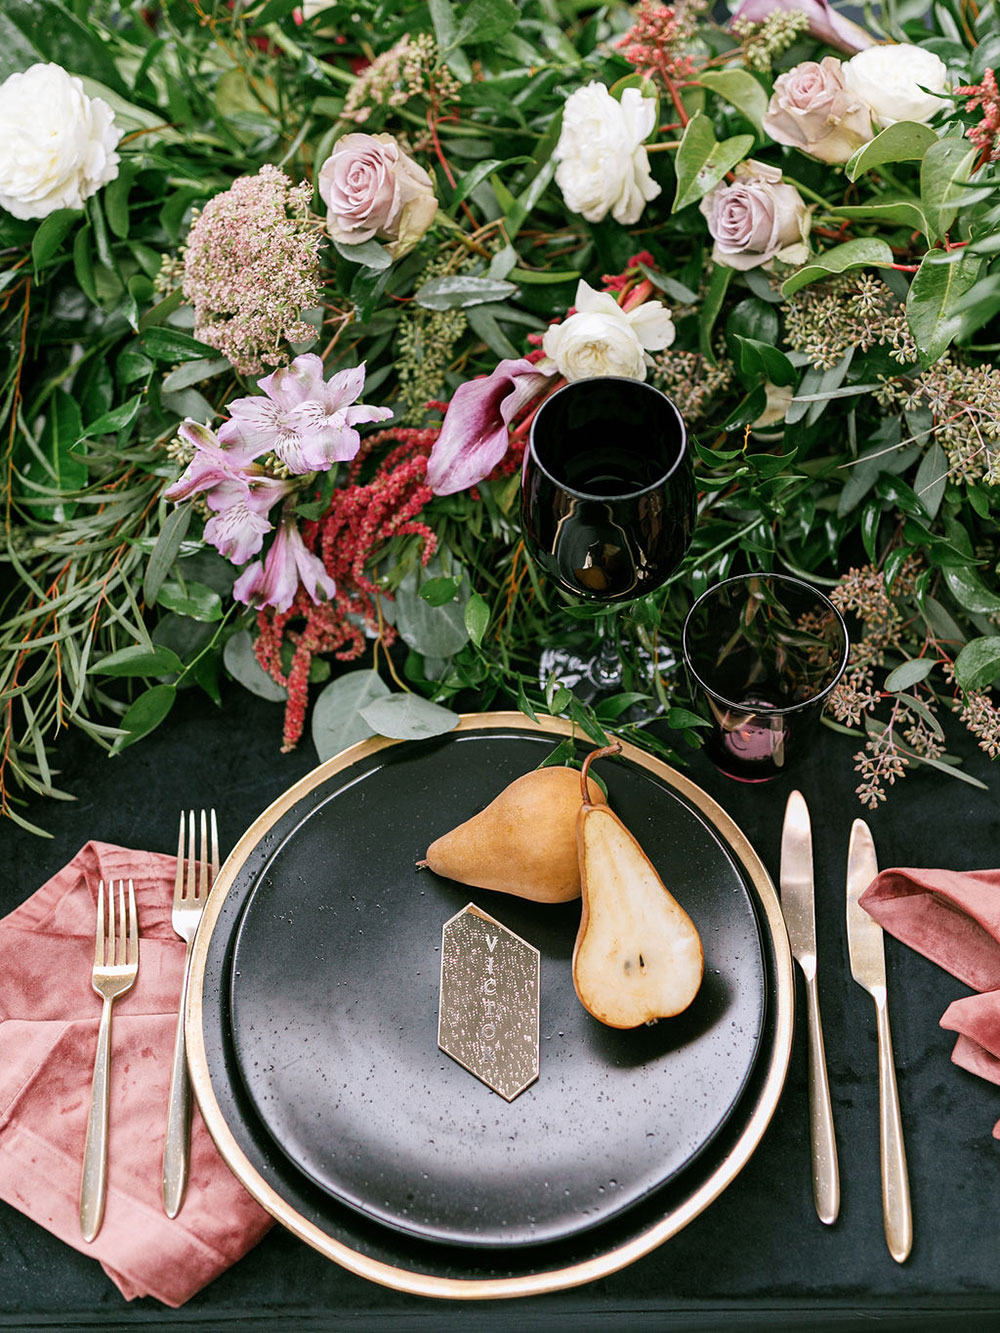 Fresh pears were added to each place setting and gold cutlery was included